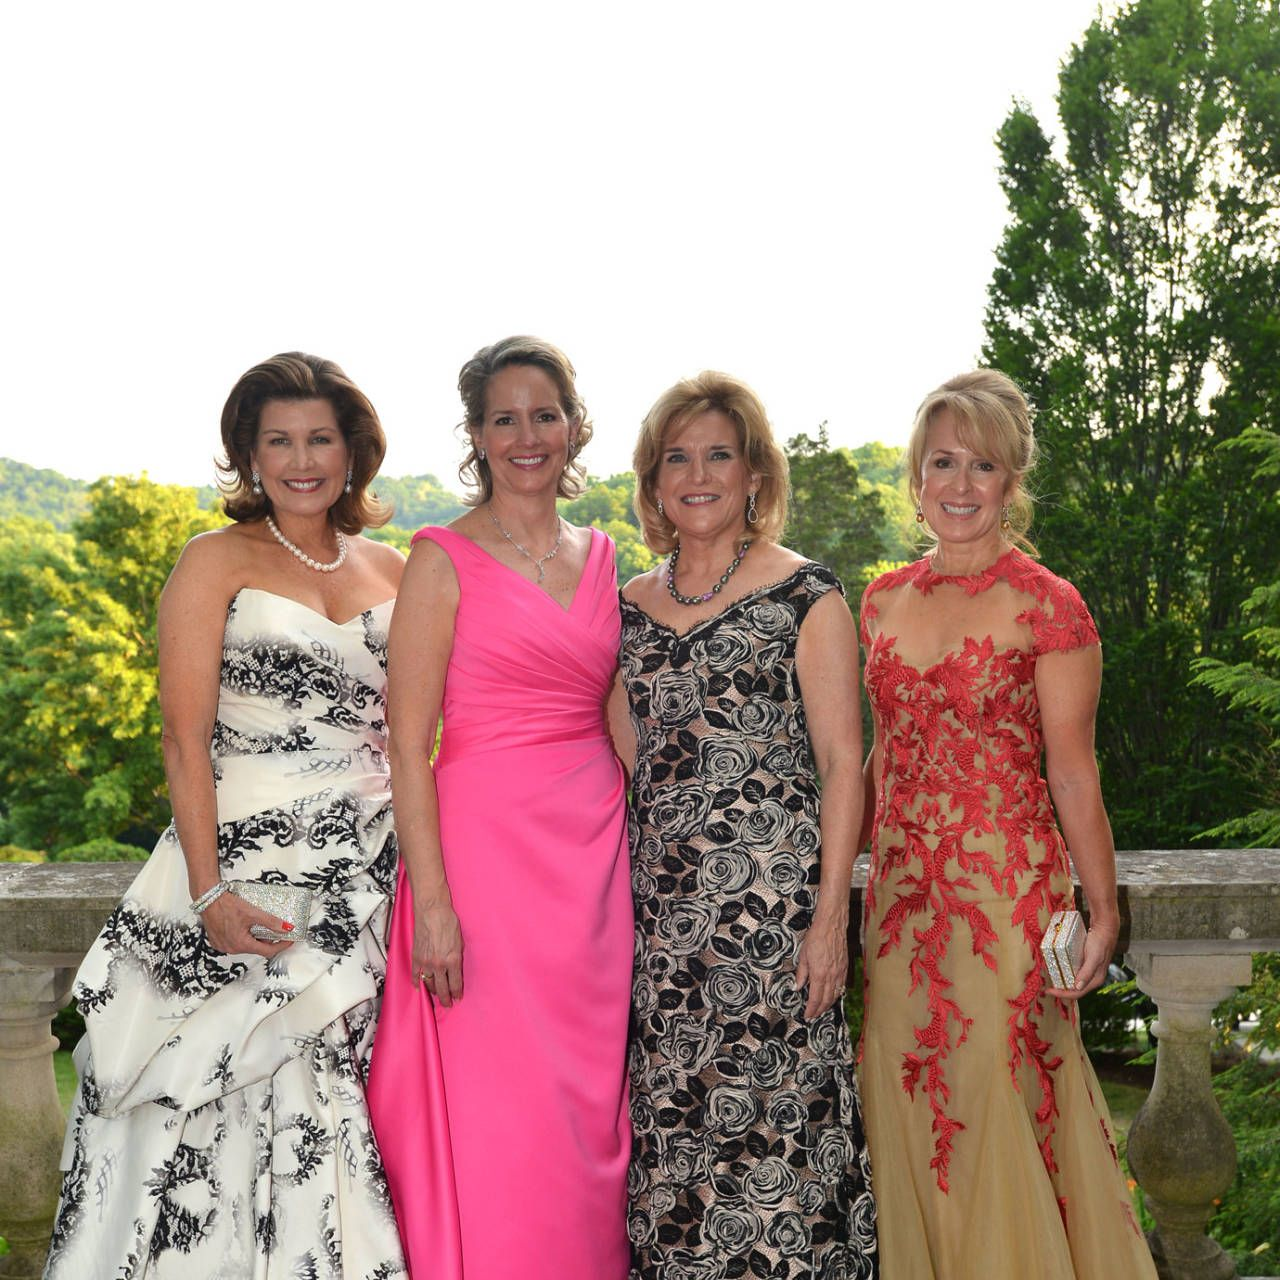 """This past Saturday in Nashville, 850 Tennesseans in white tie attended the Swan Ball at Cheekwood. The event, now in its 51st year, benefits the Botanical Garden and Museum of Art. A 55-acre estate built by the Cheek family that made itsfortune through Maxwell House Coffee, Cheekwood opened to the public in 1960 and includes 11 specialty display gardens along with a collection of painting, sculpture, and decorative arts.  This year's Swan Ball honored decorator Mario Buatta, known as """"the Prince of Chintz,"""" and the Grammy Award-winning Kool & The Gang, known for hits like """"Celebration"""" and """"Ladies Night"""" provided the entertainment. Dinner was picked shrimp salad and espresso-rubbed black angus filet, and dessert, appropriately accompanied by Maxwell House Coffee, was a chocolate turtle tart."""